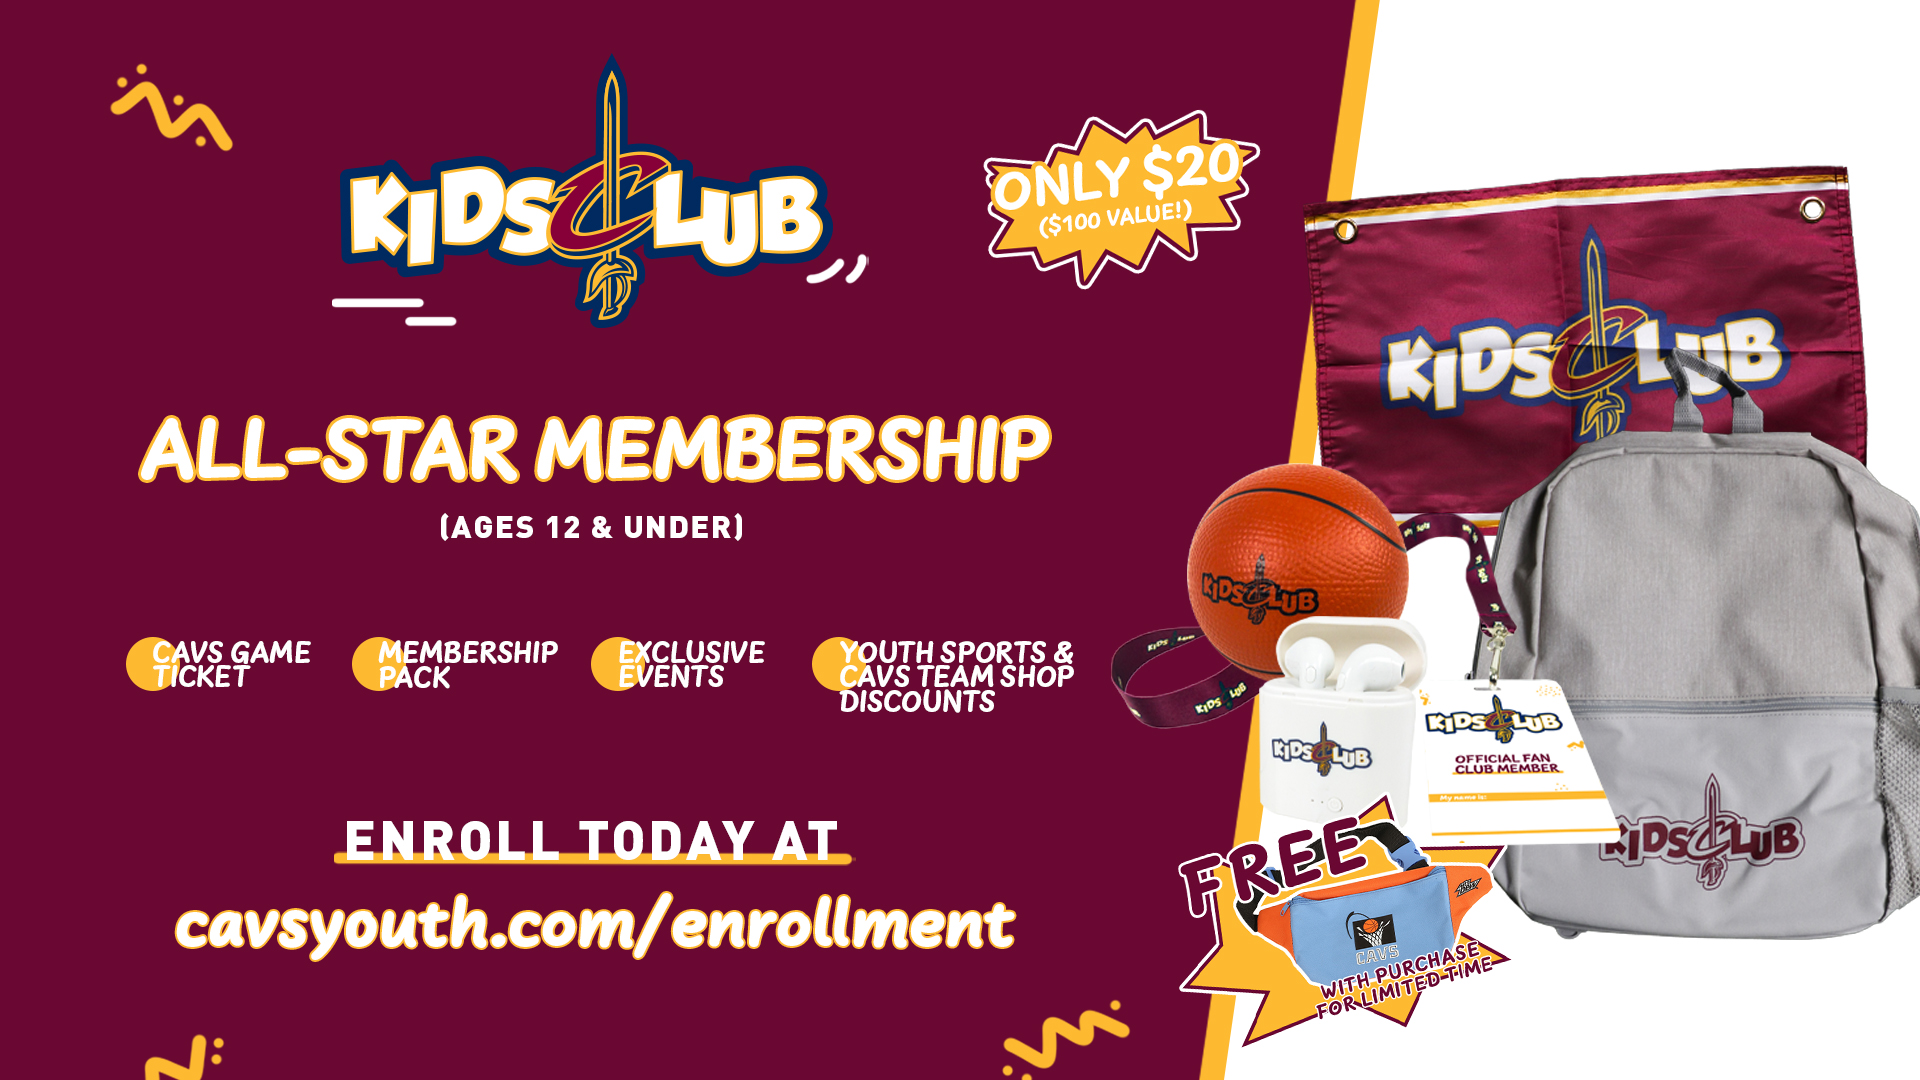 Paid Kids Club All-Star Launch Graphics-EarlyBird-Twitter-Fixed-1